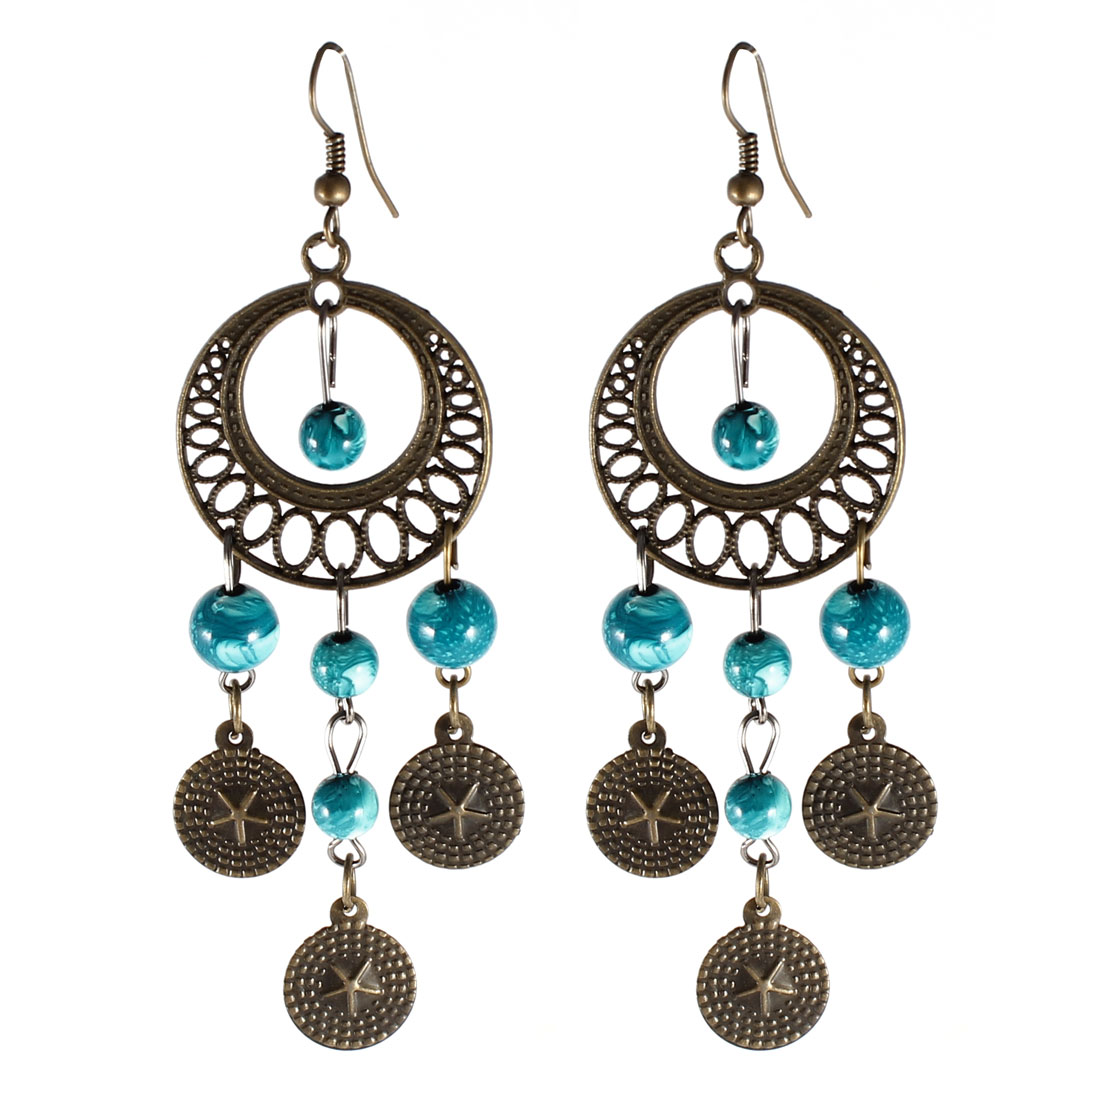 Teal Beads Pendant Dangling Hanging Ear Hook Earrings Eardrops Pair for Women